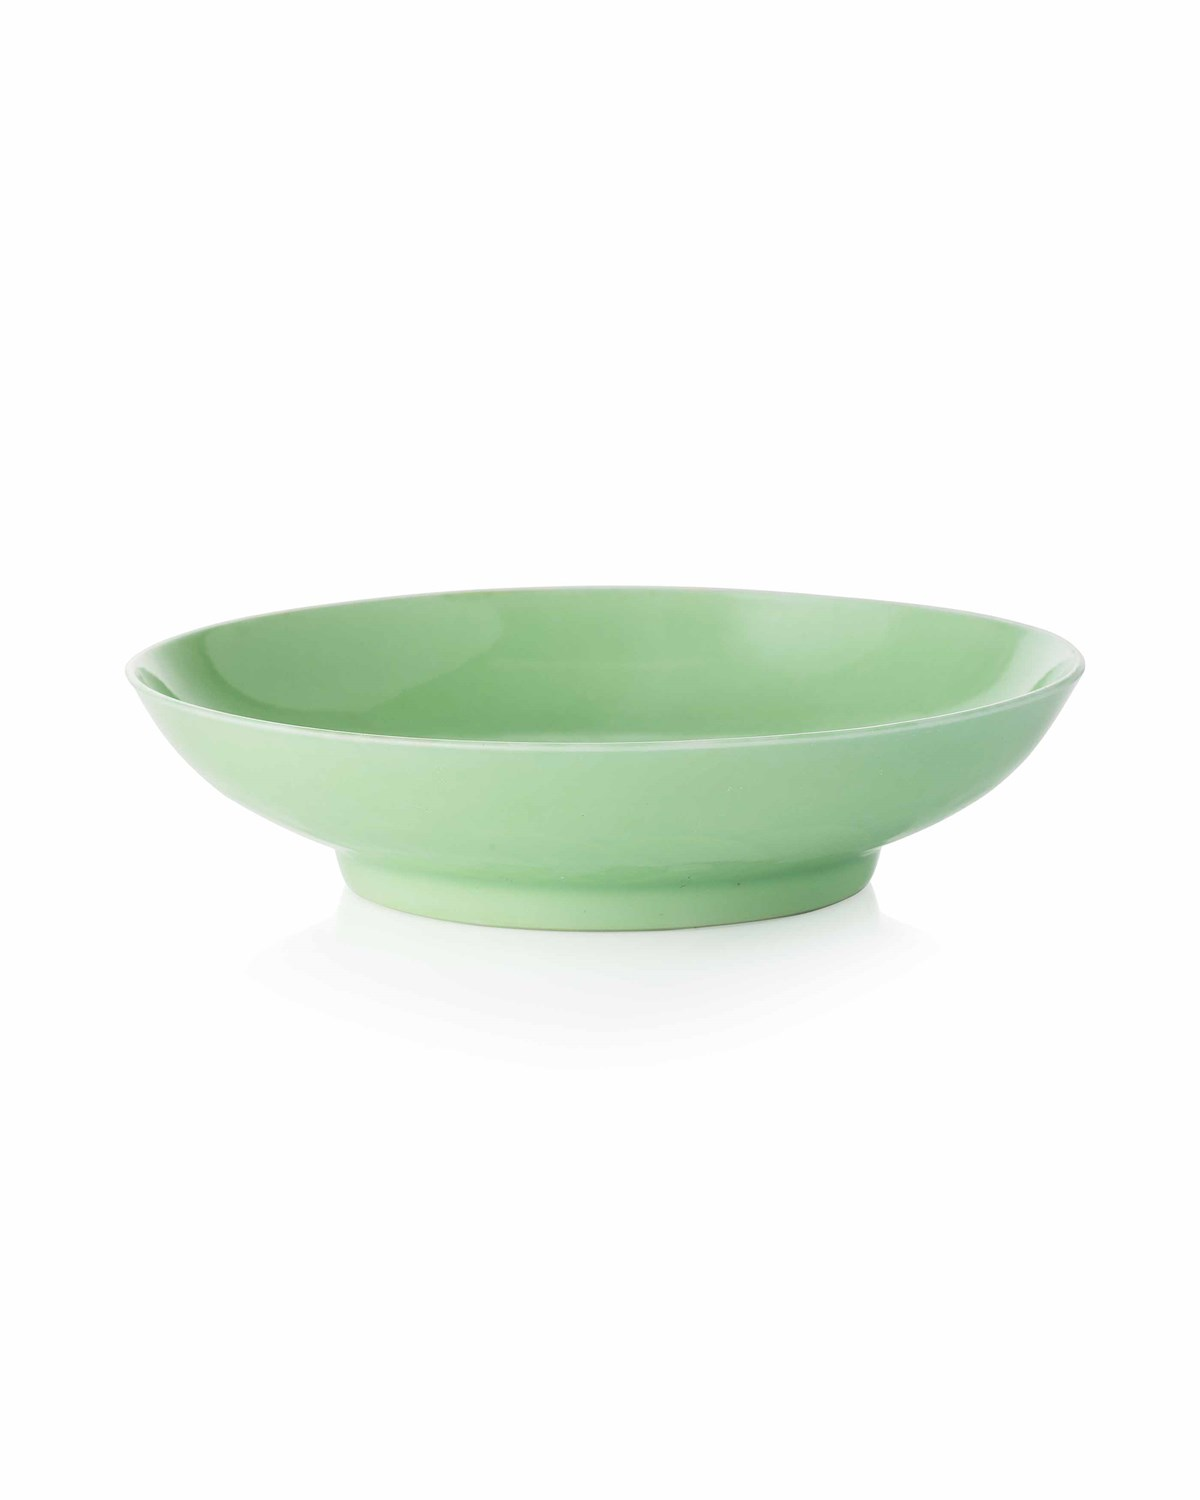 Lot 719 - INCISED LIME GREEN IMPERIAL SAUCER DISH